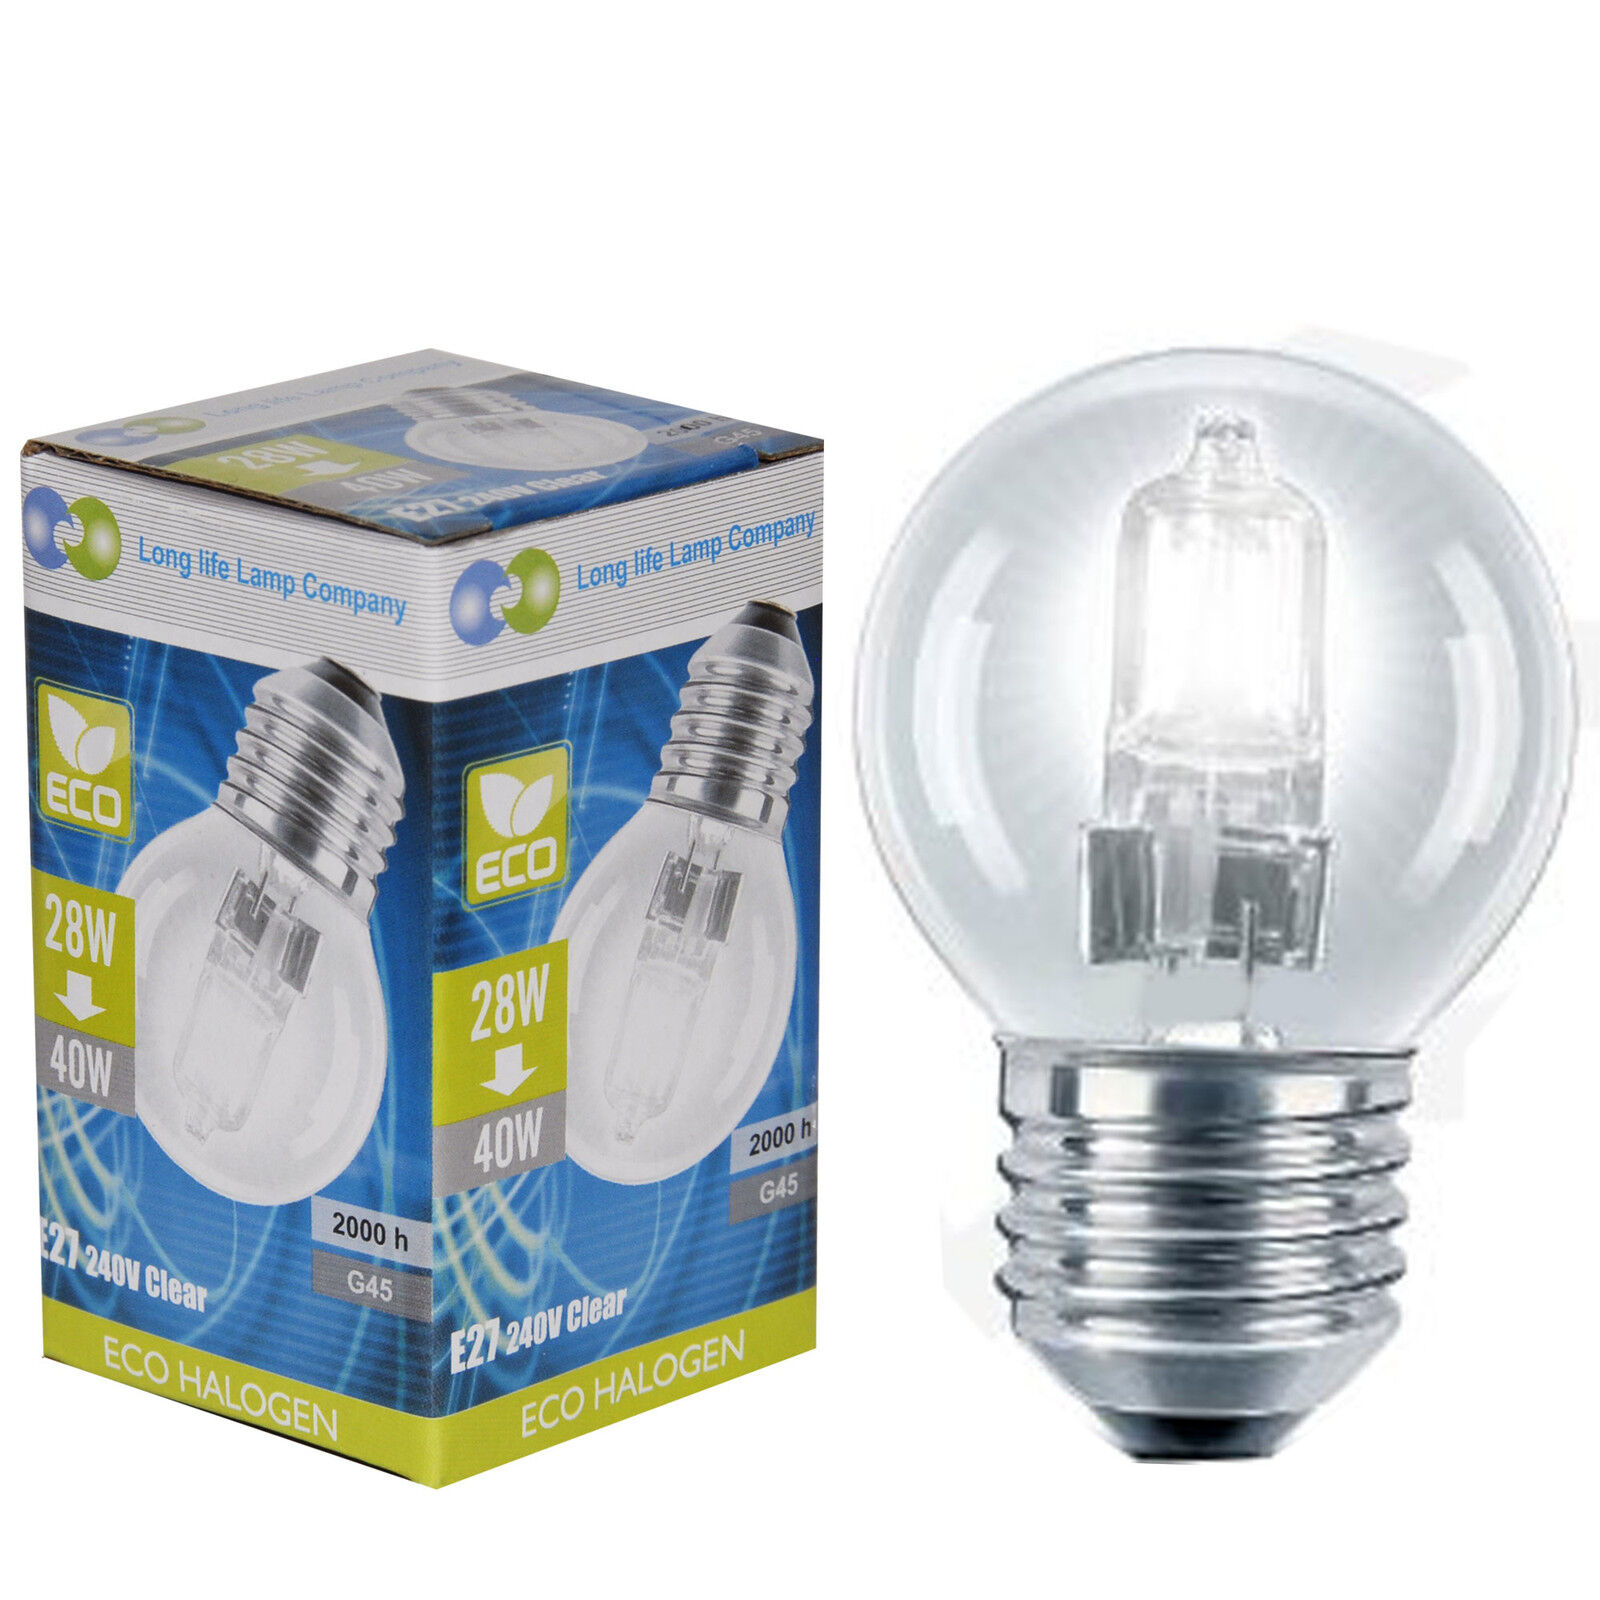 4 Eco Halogen Energy Saving Golf Balls Light Bulb 28w 40w E27 Es Edison Screw Ebay